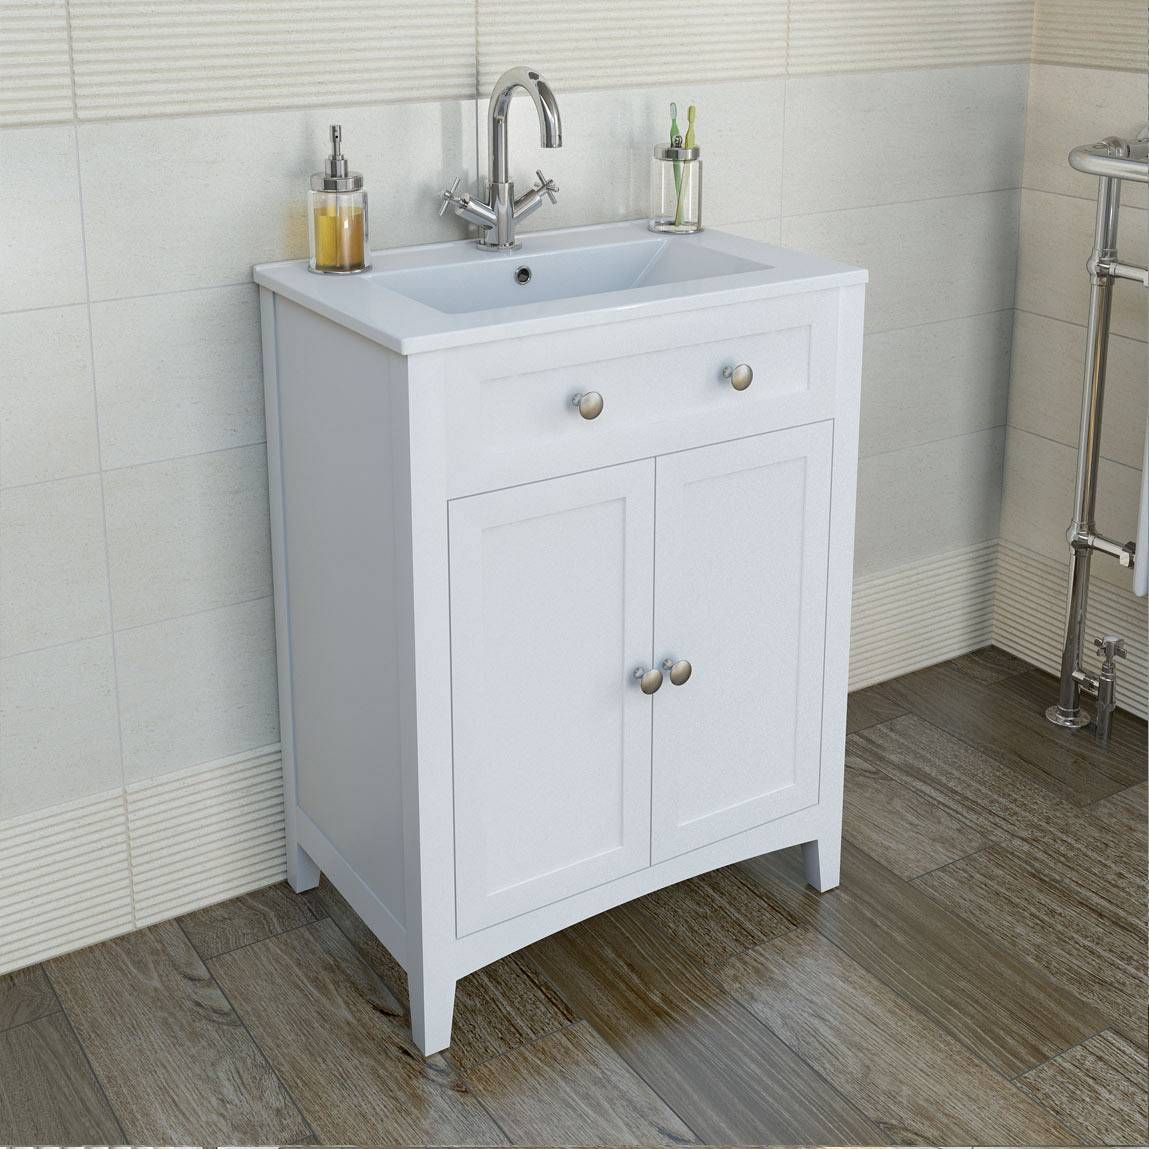 Bathroom sink and vanity unit - Camberley White 600 Door Unit Basin Http Www Victoriaplumb Bathroom Vanity